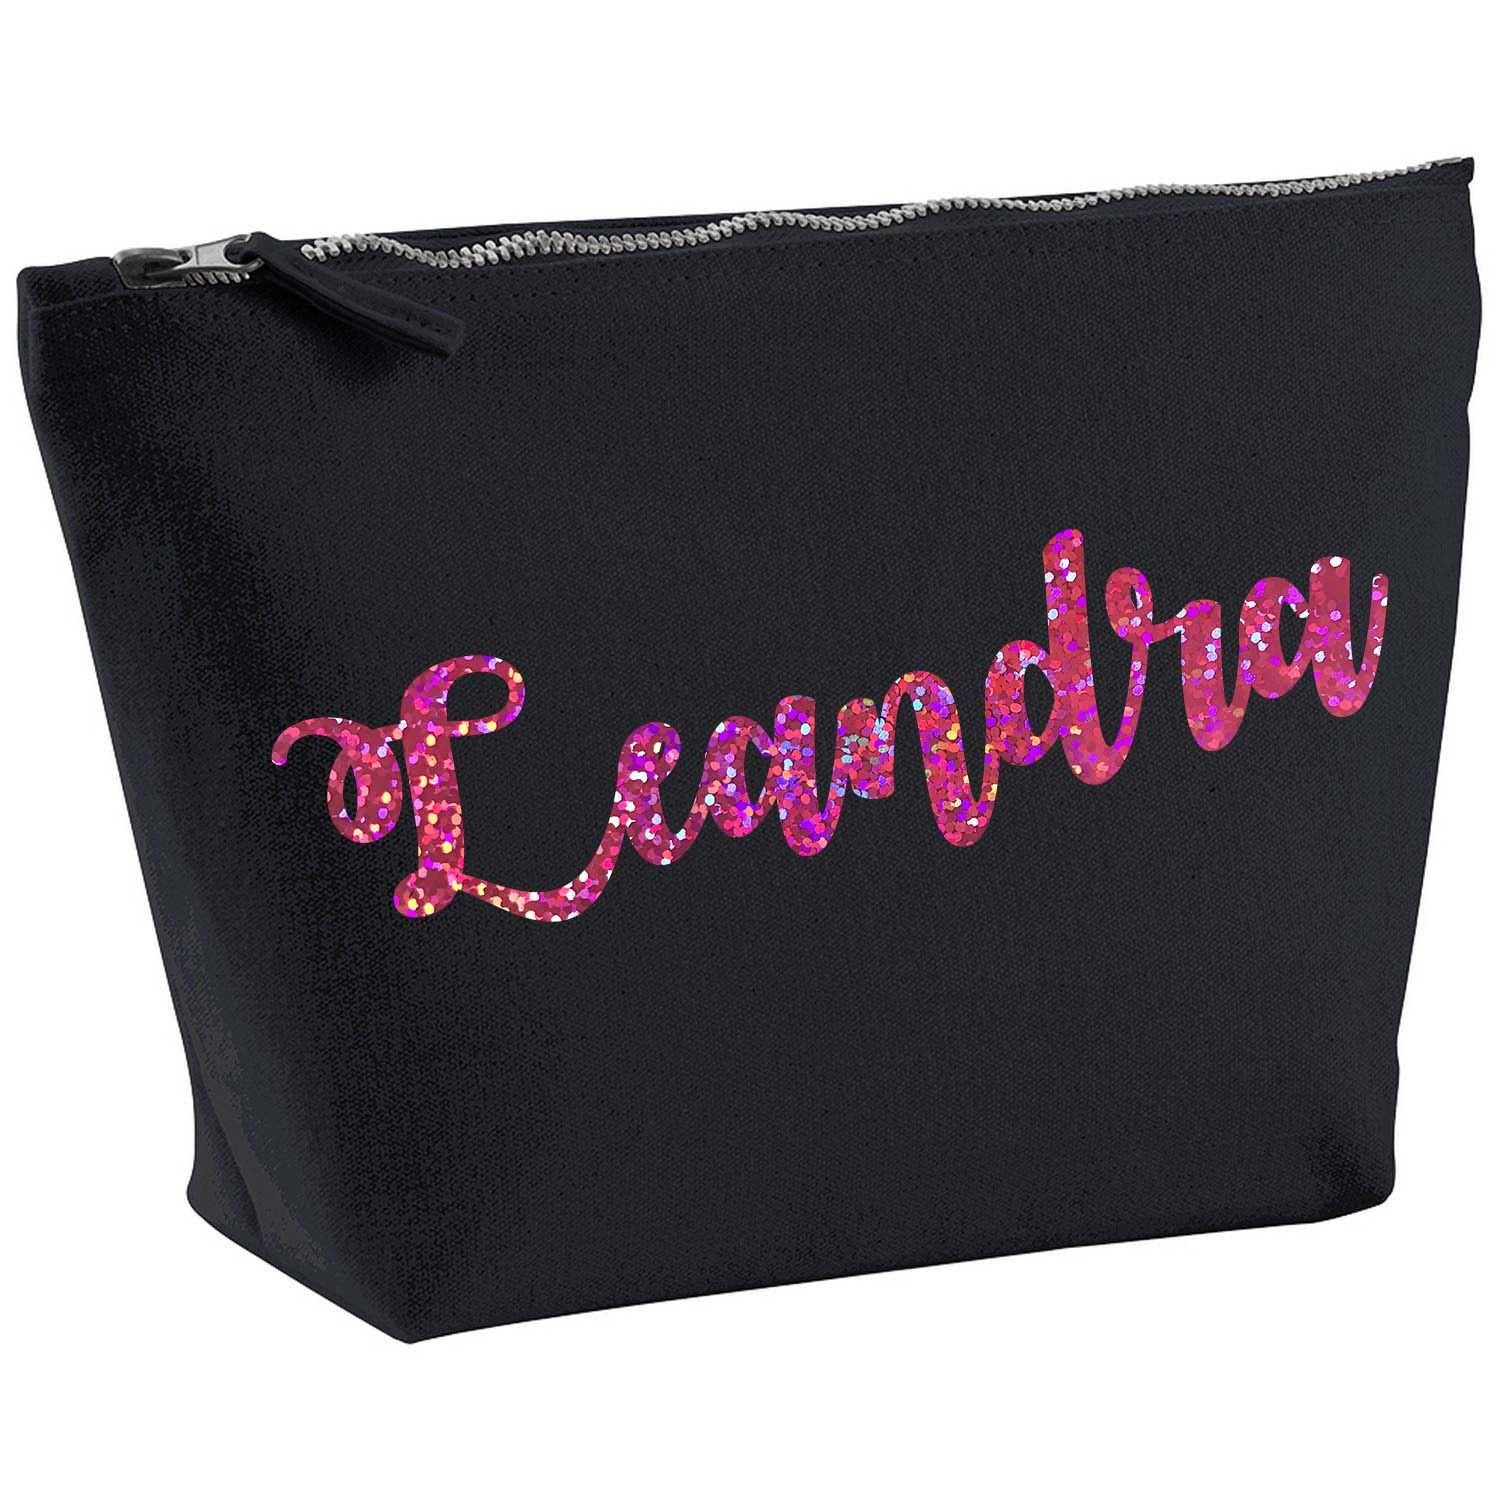 Leandra Personalised Name Cotton Canvas Black Make Up with a Holographic Pink Print Accessory Bag Wash Bag Size 14x20cm. The perfect personalised Gift for All occasion, Christmas, Birthdays, C S PRINTING LIMITED